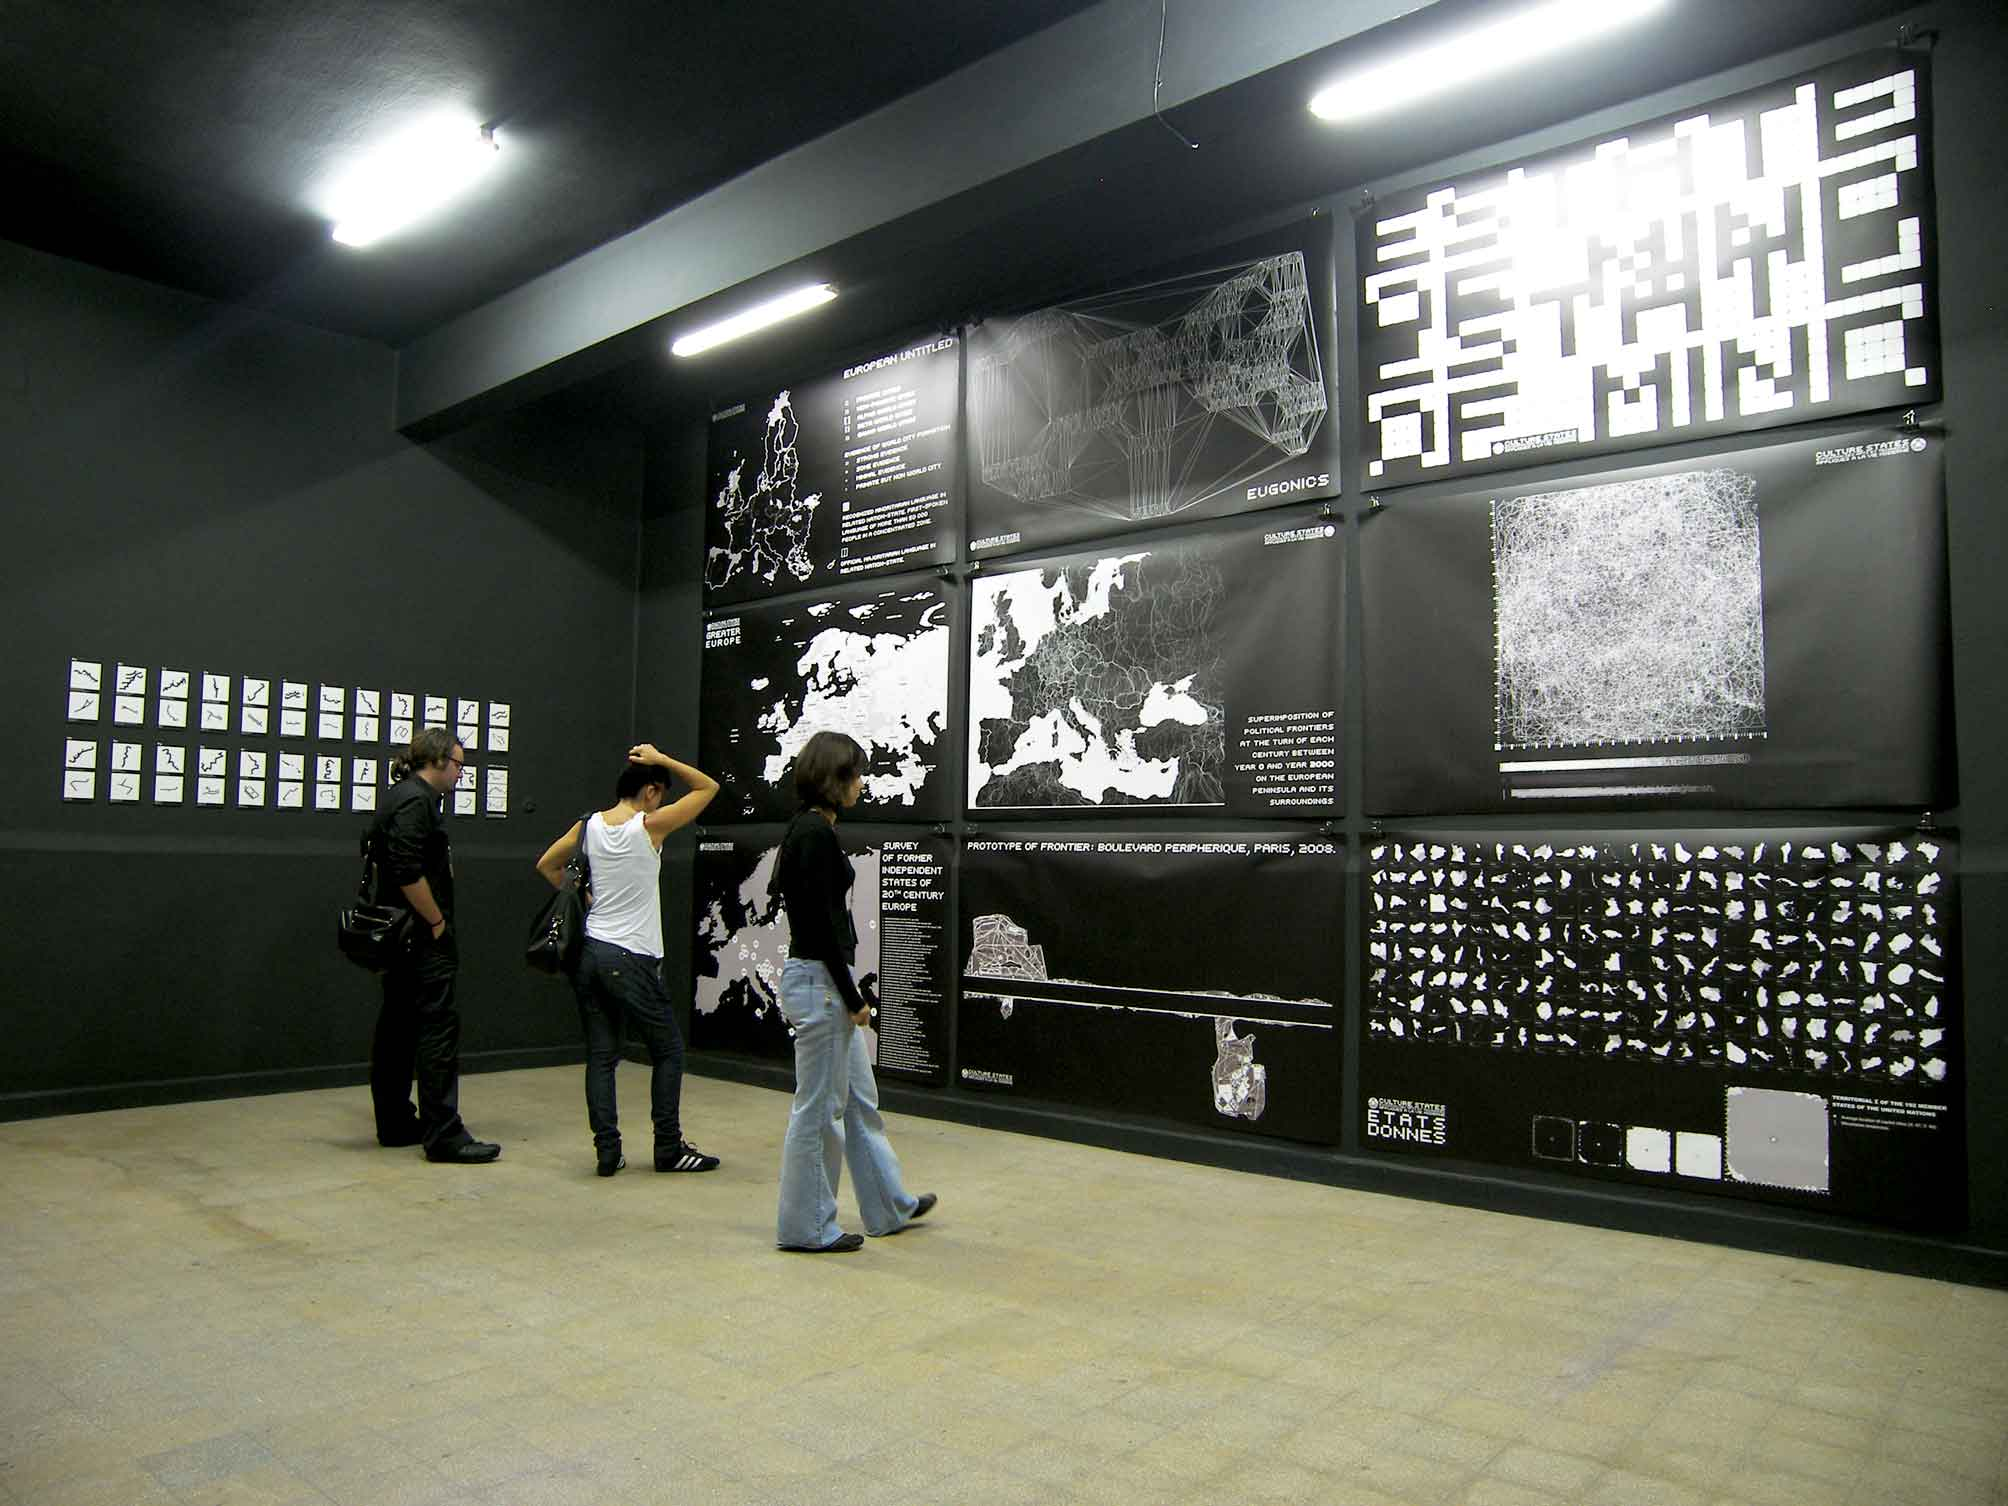 Société Réaliste, MA: Culture States, The future is the extension of the past by other means, 2009. Mural inscription with the Limes New Roman writing system. Installation view, Istanbul Biennial, 2009.  © Société Réaliste. Photo: Nathalie Barki